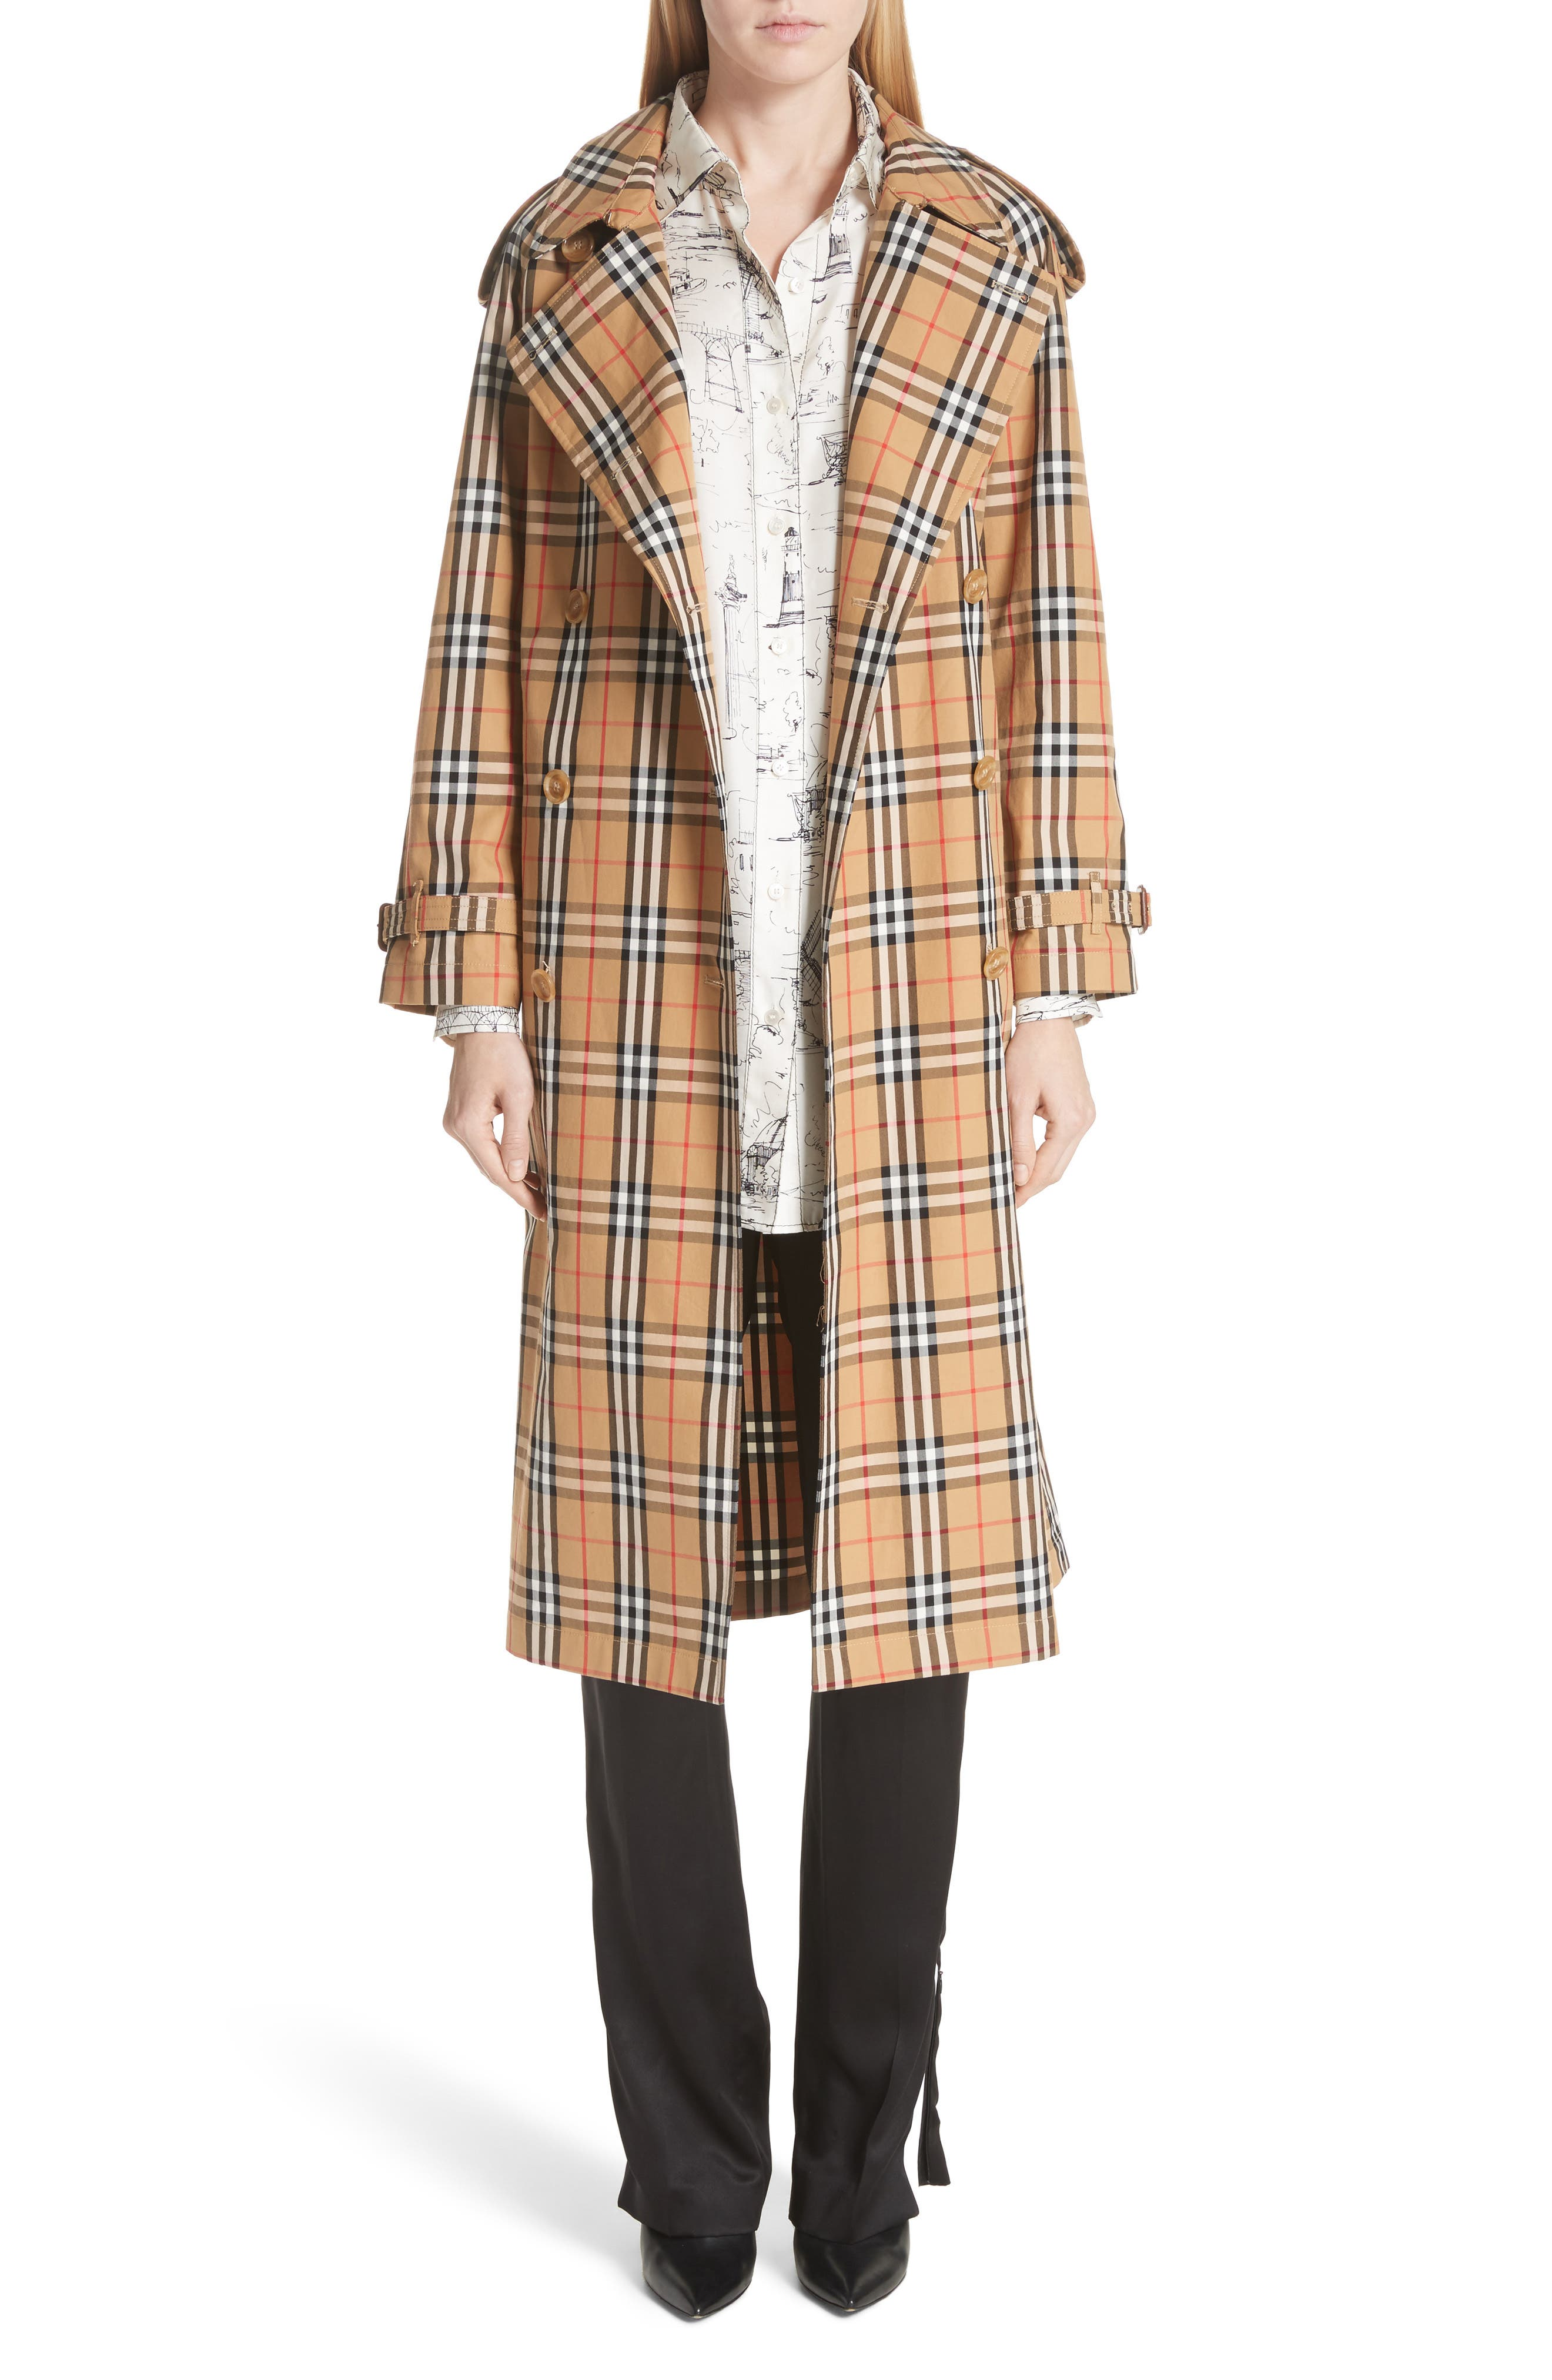 BURBERRY, Eastheath Vintage Check Trench Coat, Main thumbnail 1, color, ANTIQUE YELLOW